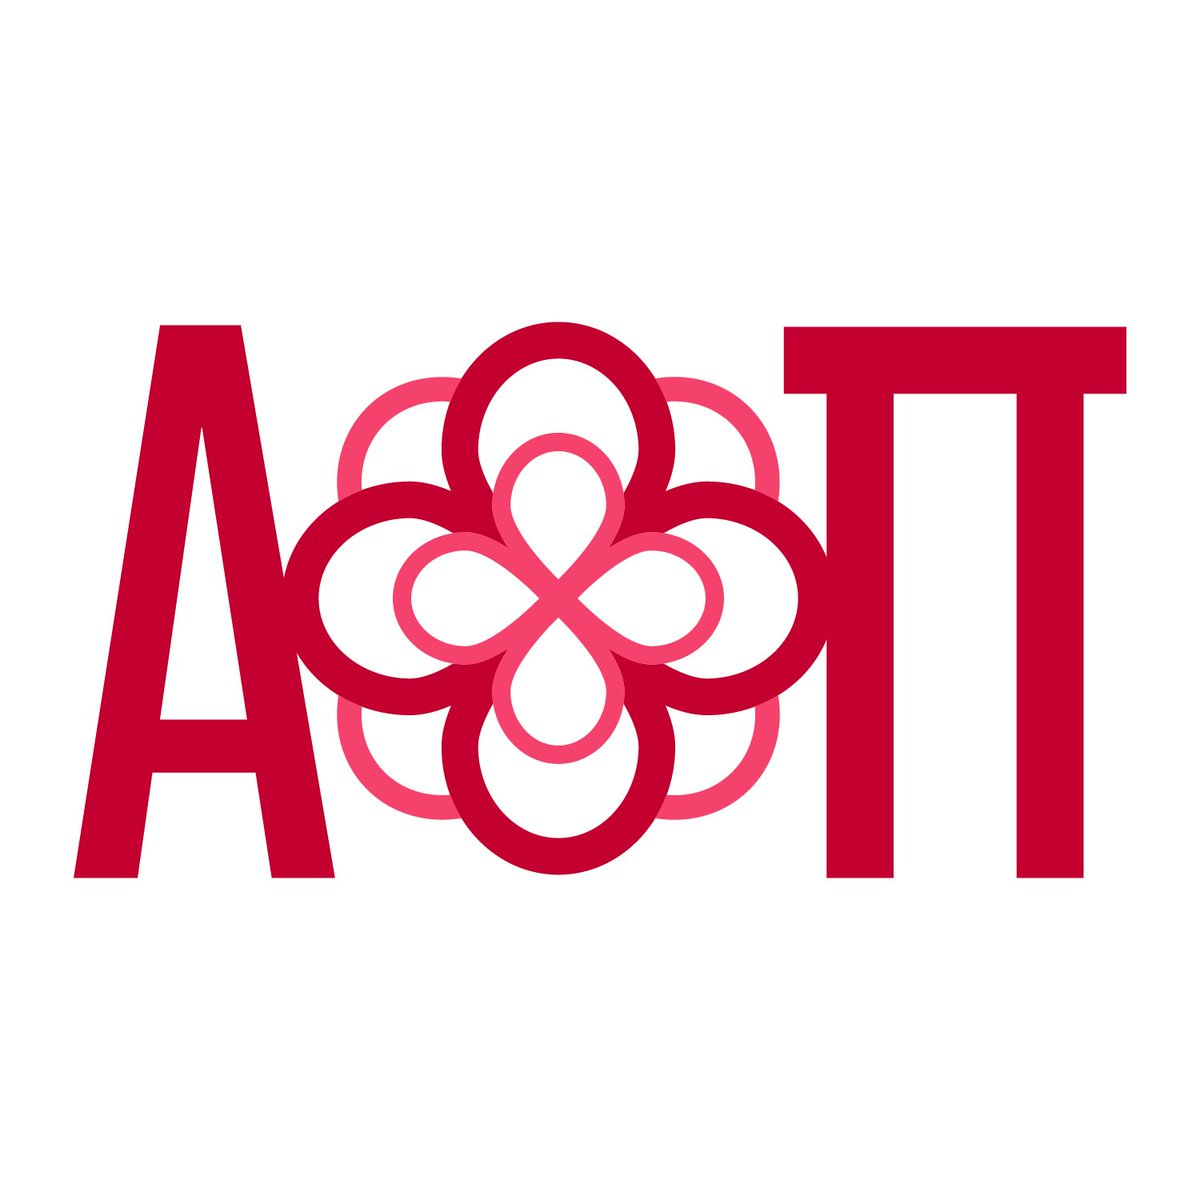 The wait is over! Alpha Omicron Pi has a new brand! For more info, click the following link, https://t.co/EgZyXT6yiA https://t.co/aDHW0rkd7M